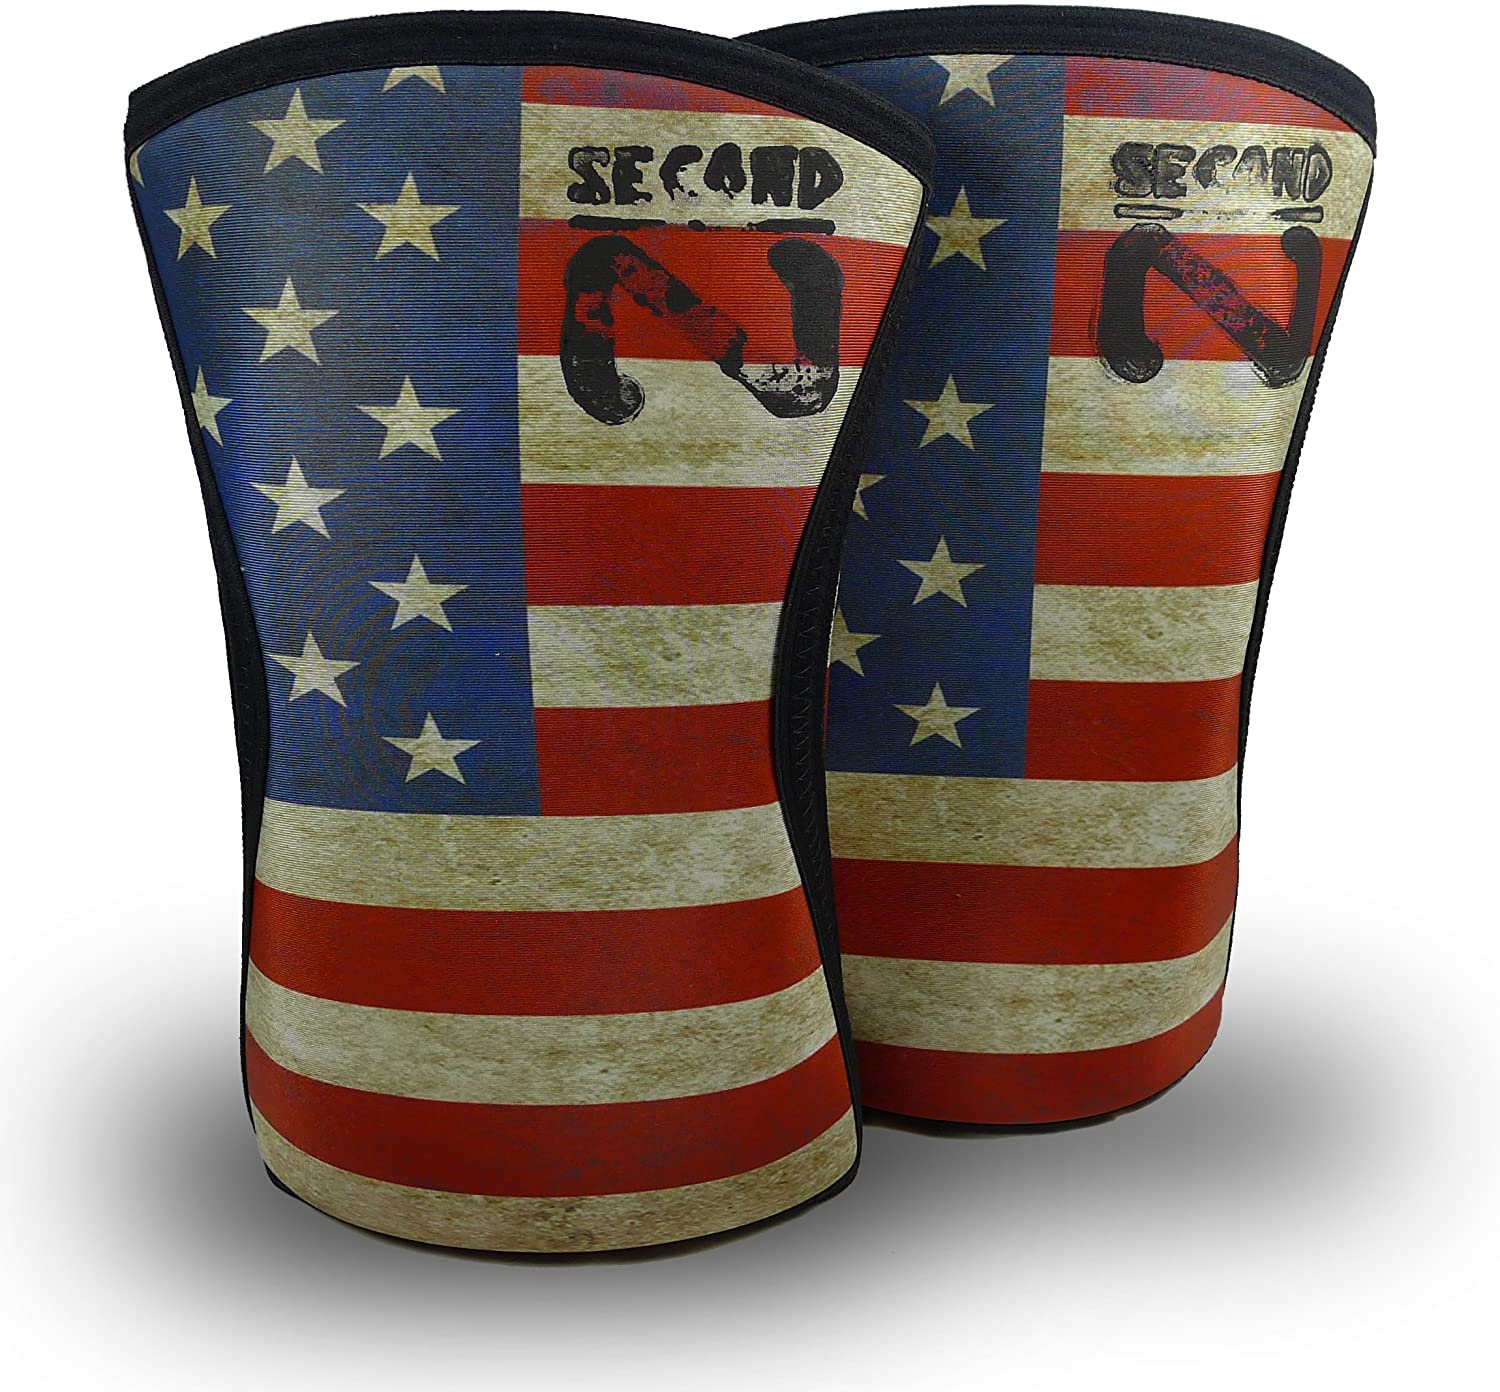 Second Nature Color US Flag Knee Sleeves (1Pair) 7mm Neoprene Support for Weightlifting Powerlifting Unisex